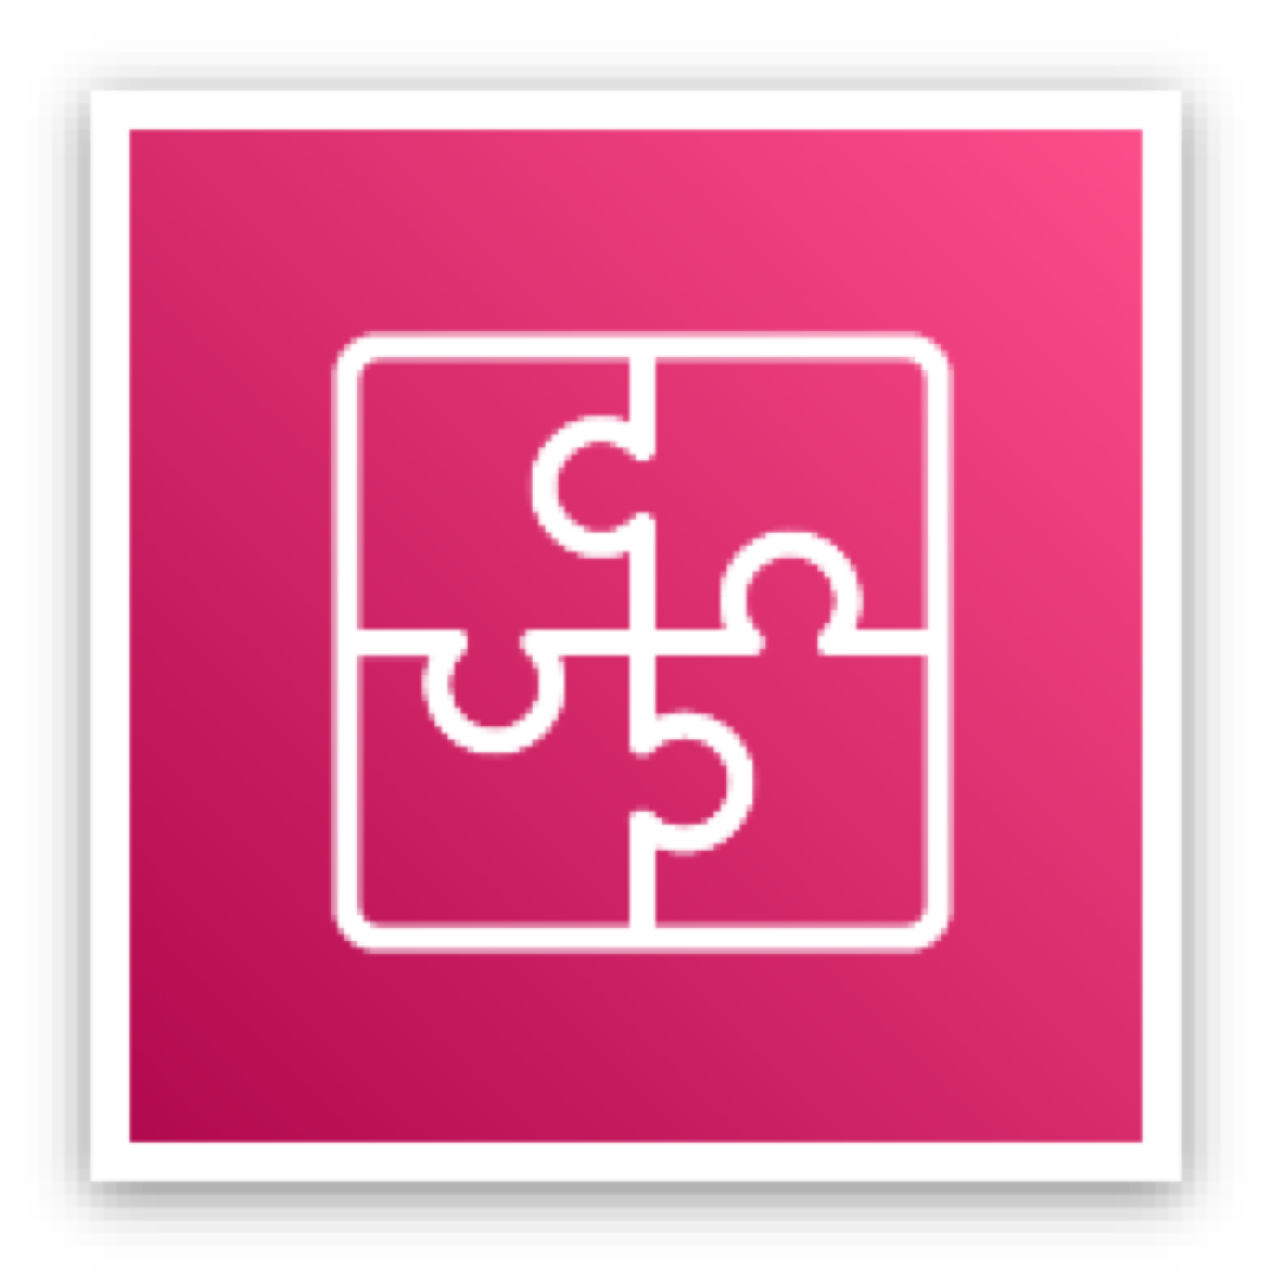 Application integration services icon depicting a square consisting of four connected puzzle pieces against a pink background